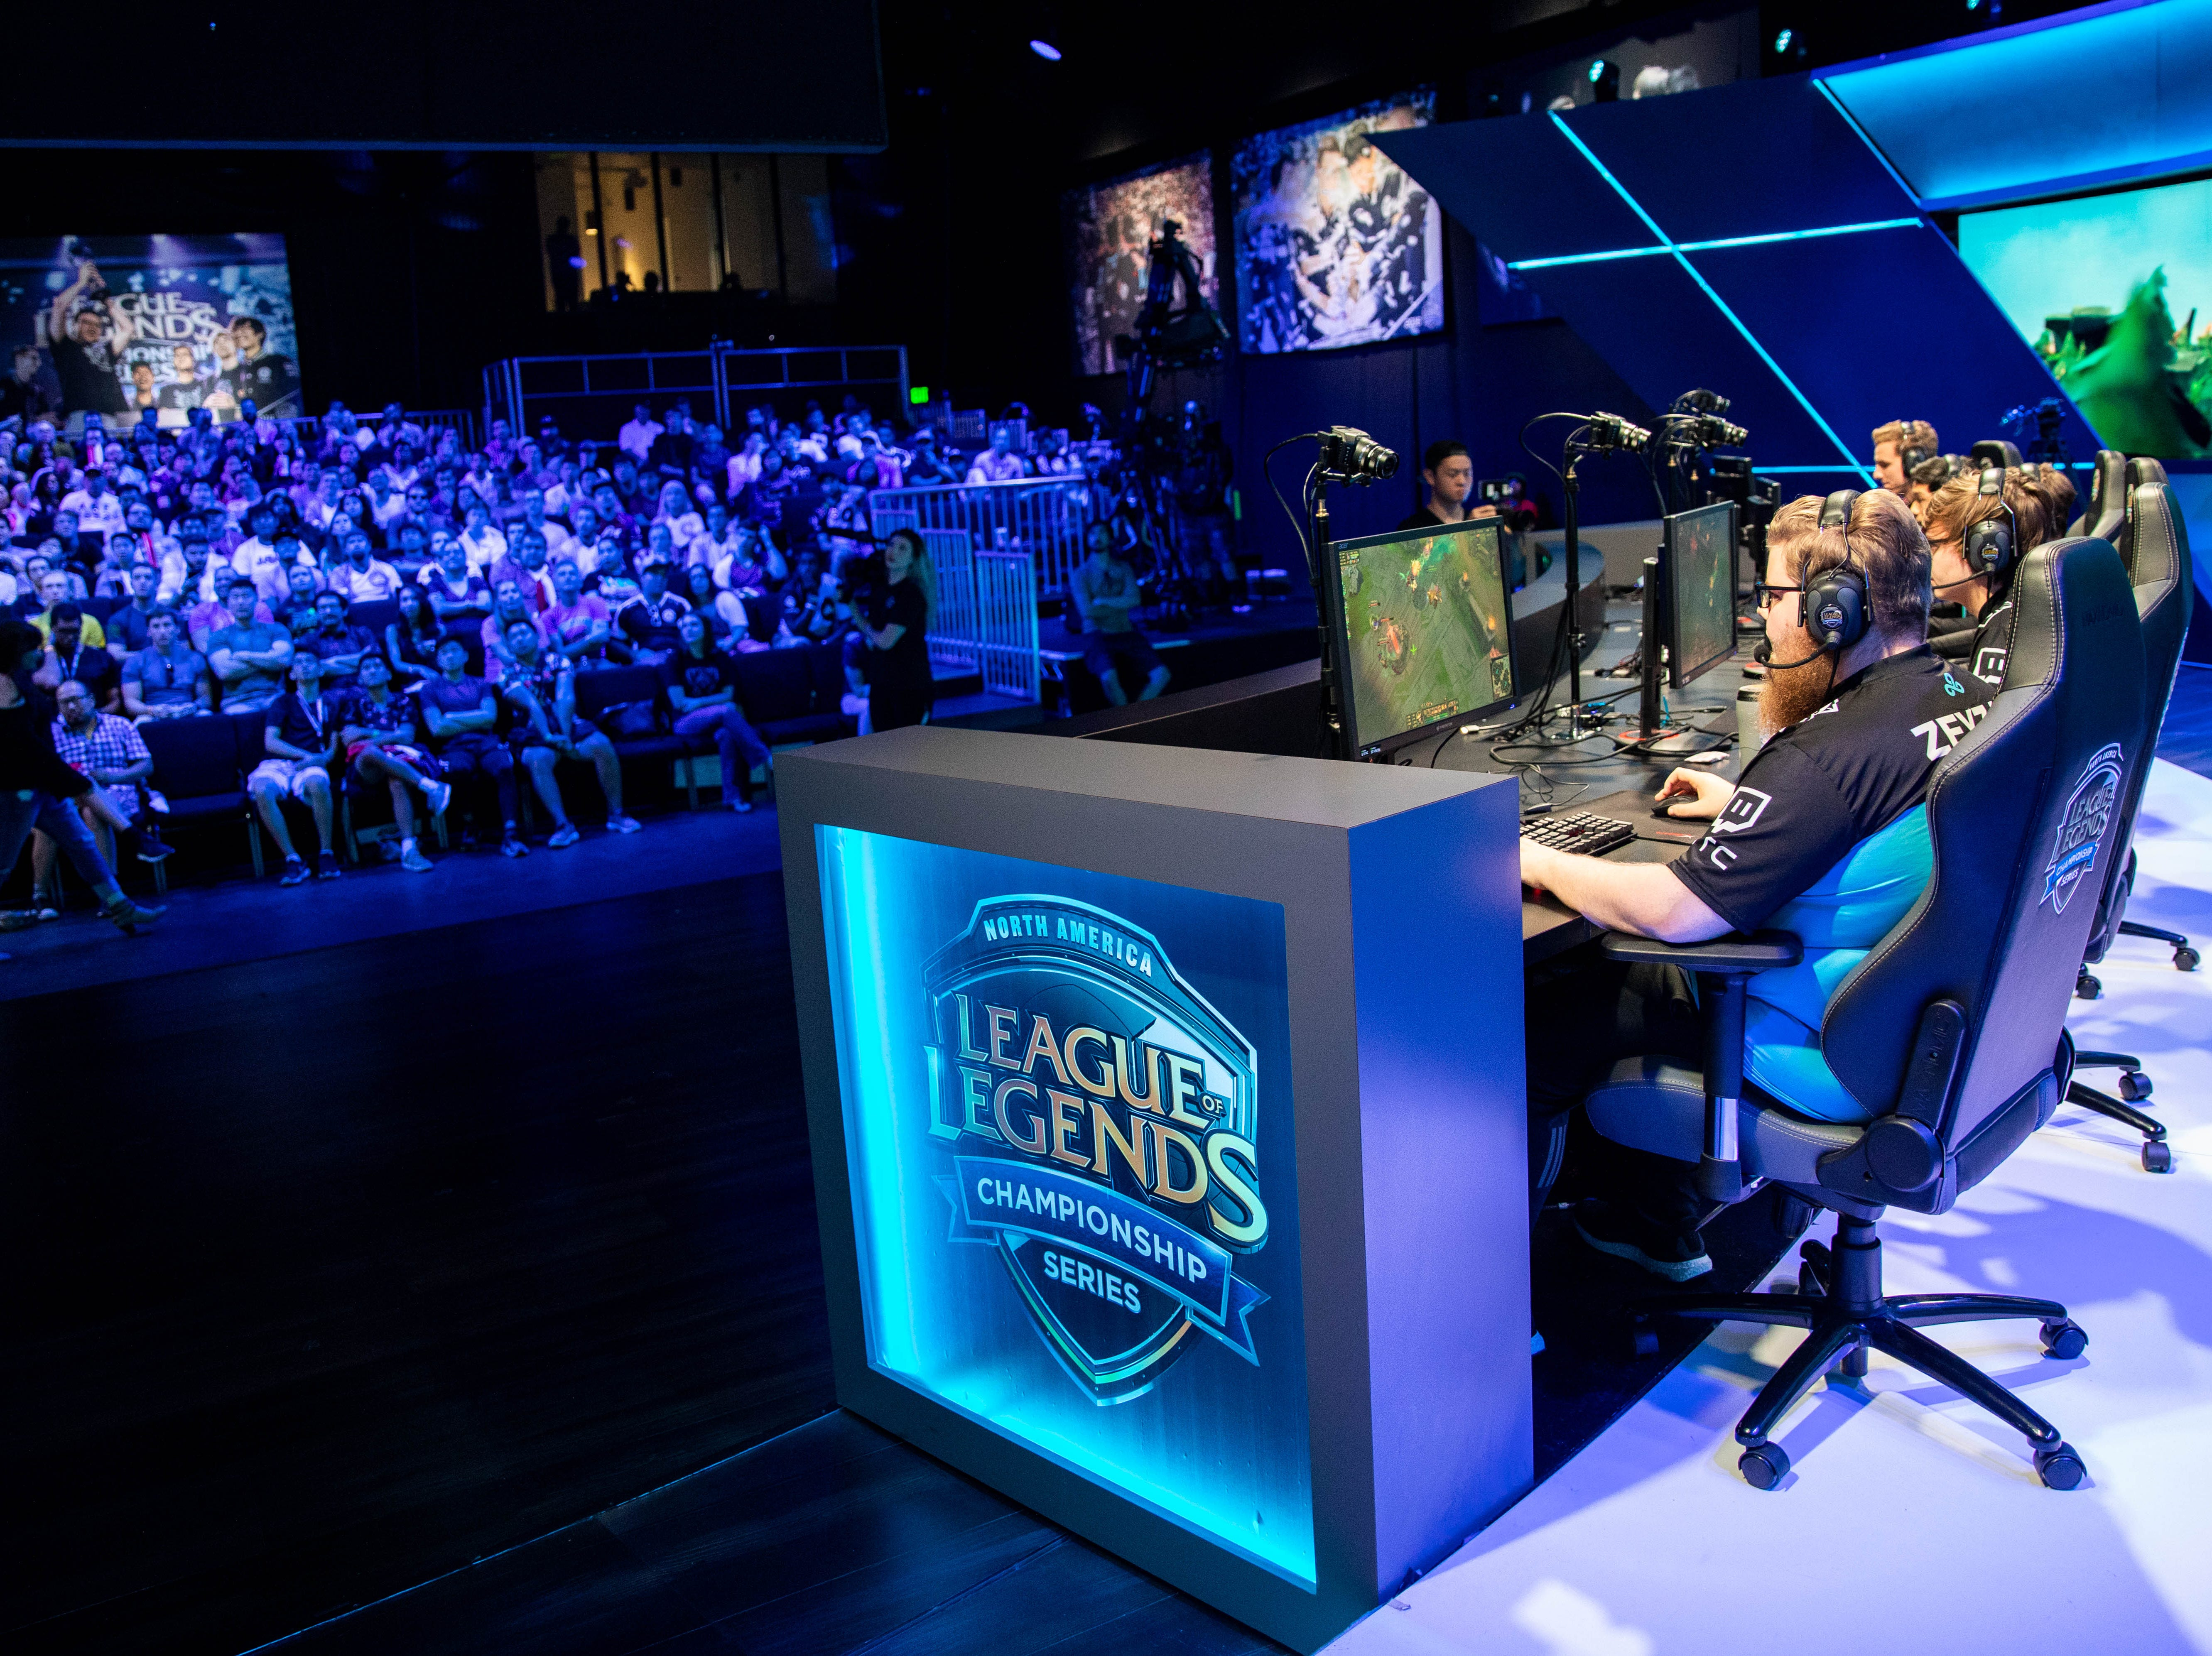 A six-figure career playing video games? Welcome to the world of professional esports